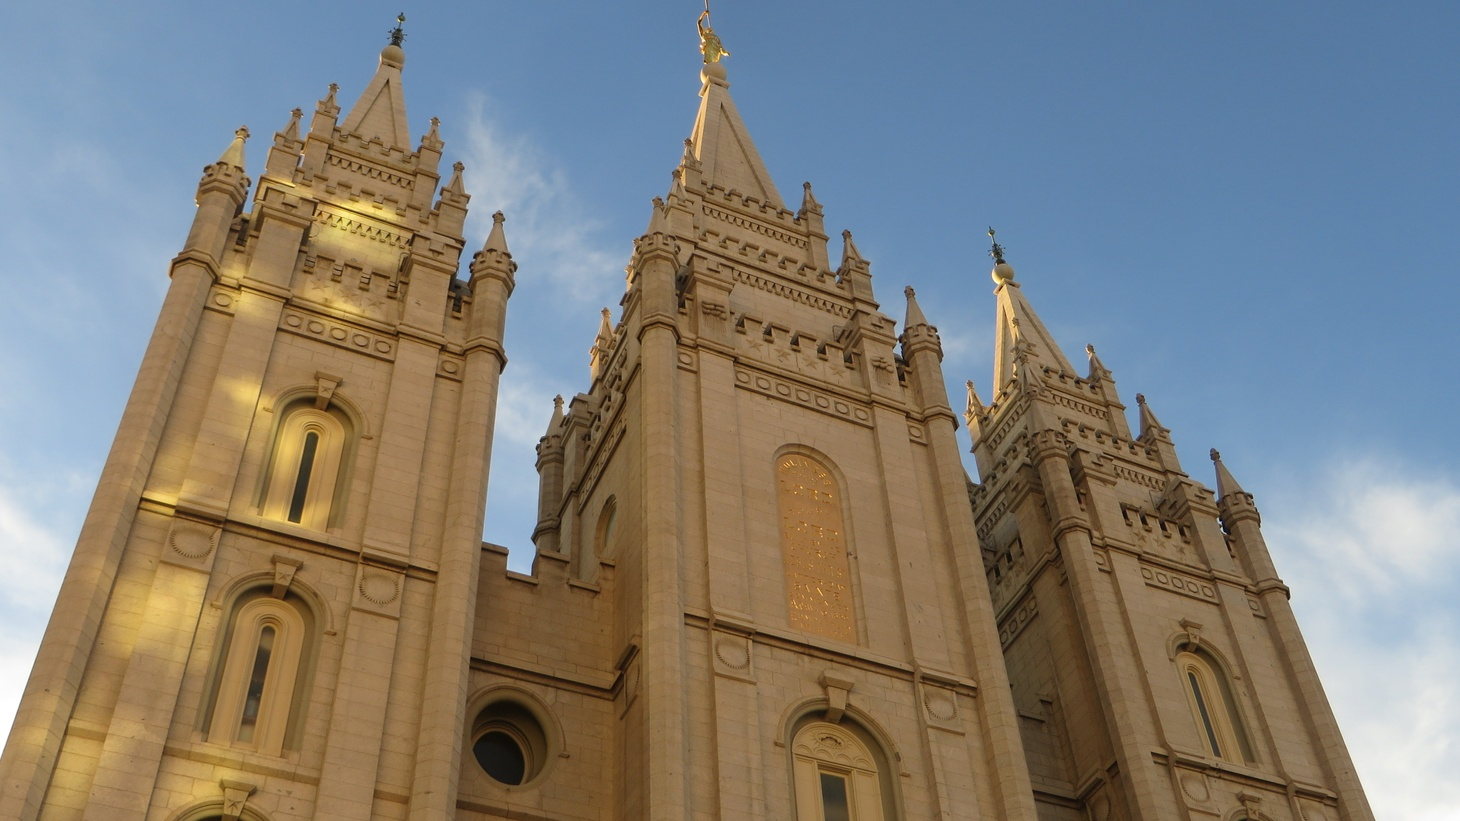 The Salt Lake Temple is part of the Church of Jesus Christ of Latter-day Saints (LDS Church), located on Temple Square in Salt Lake City, Utah, United States.